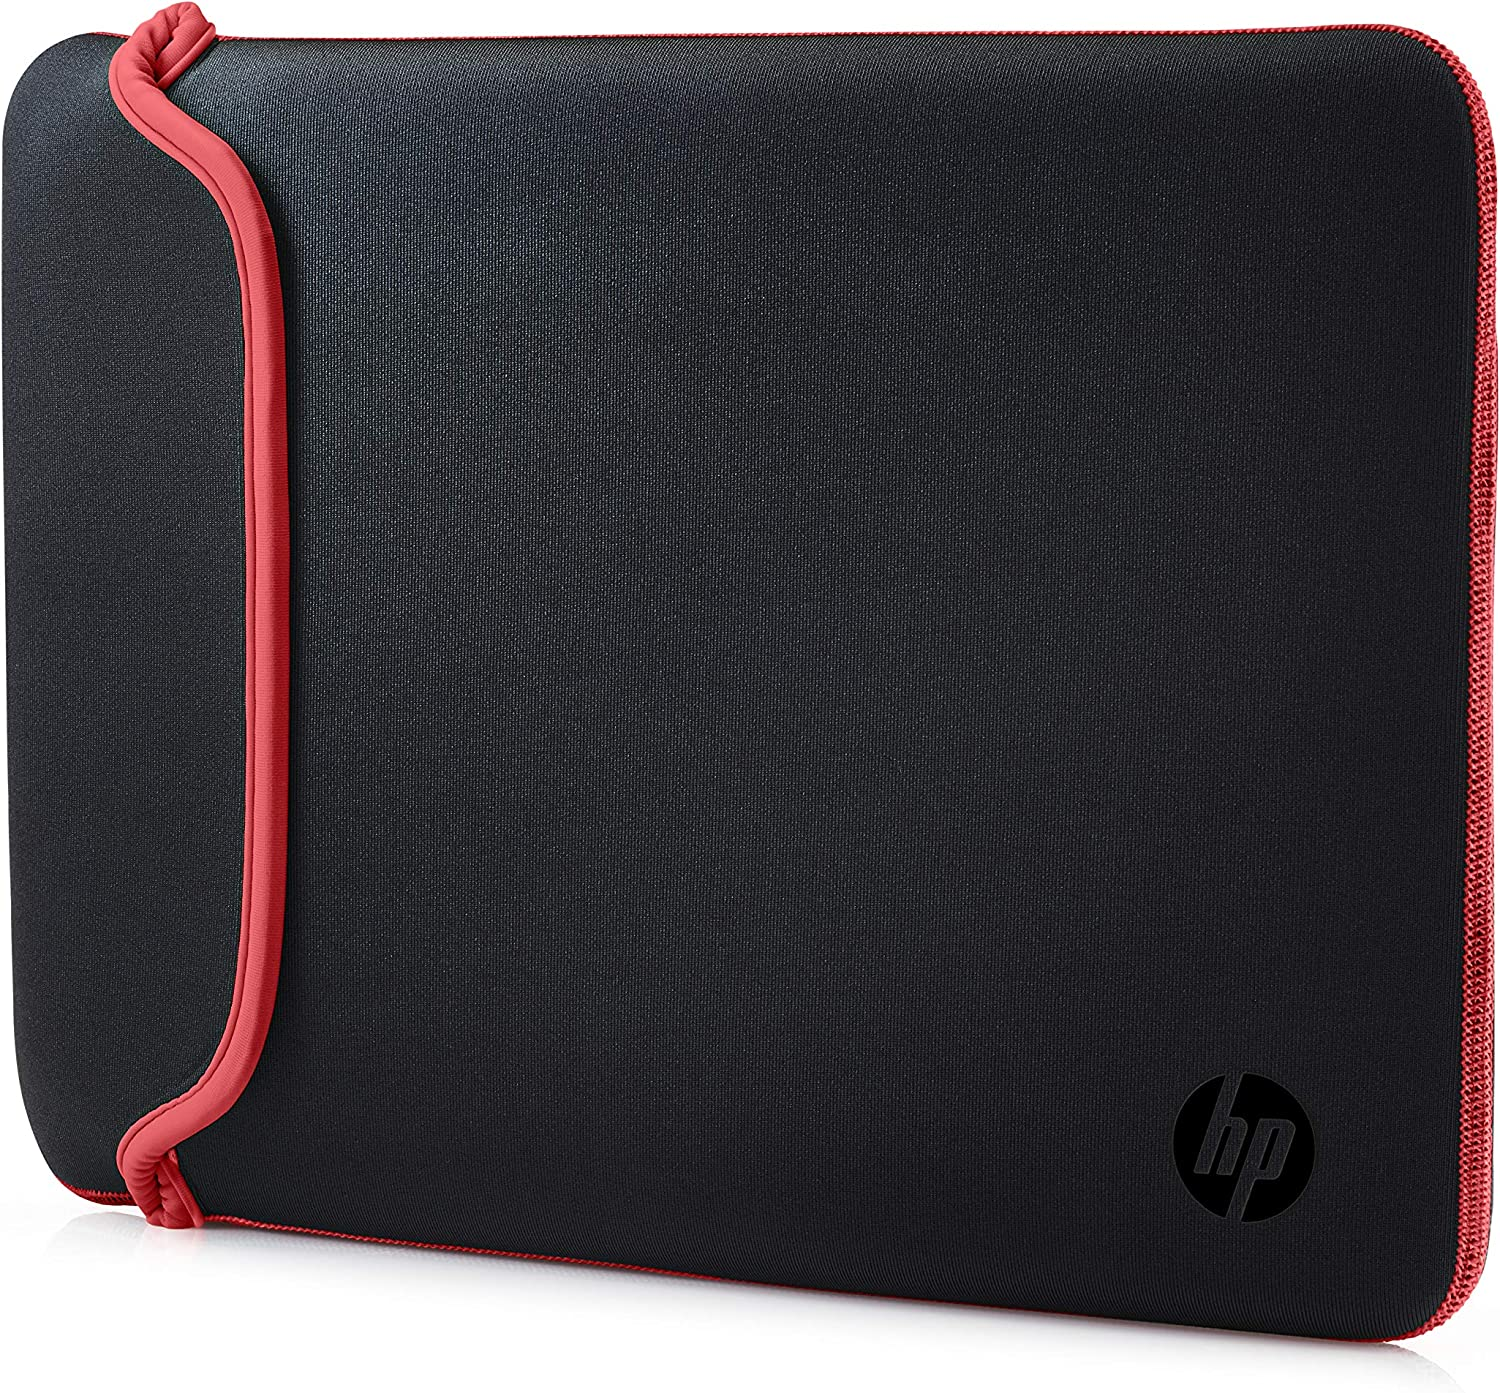 "HP 14"" Neoprene Sleeve Black/Red Black,Red"